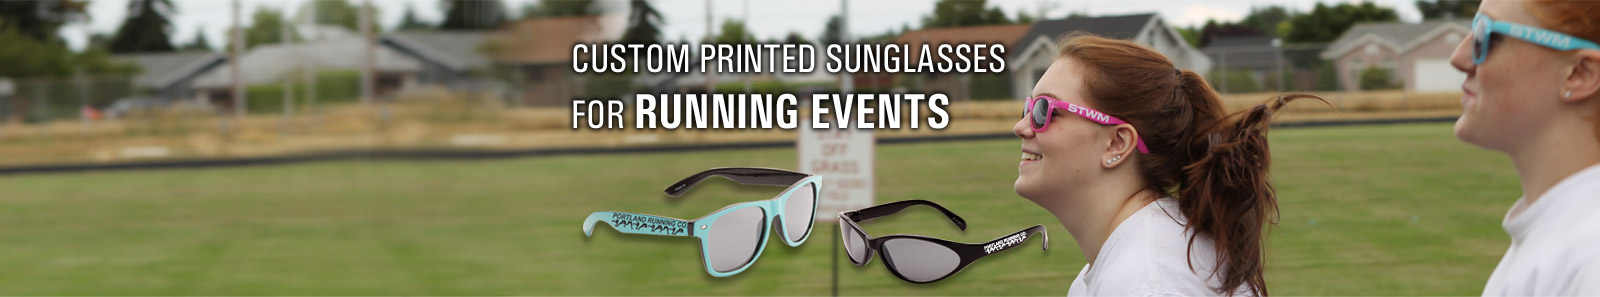 Custom Printed Sunglasses for Running Events